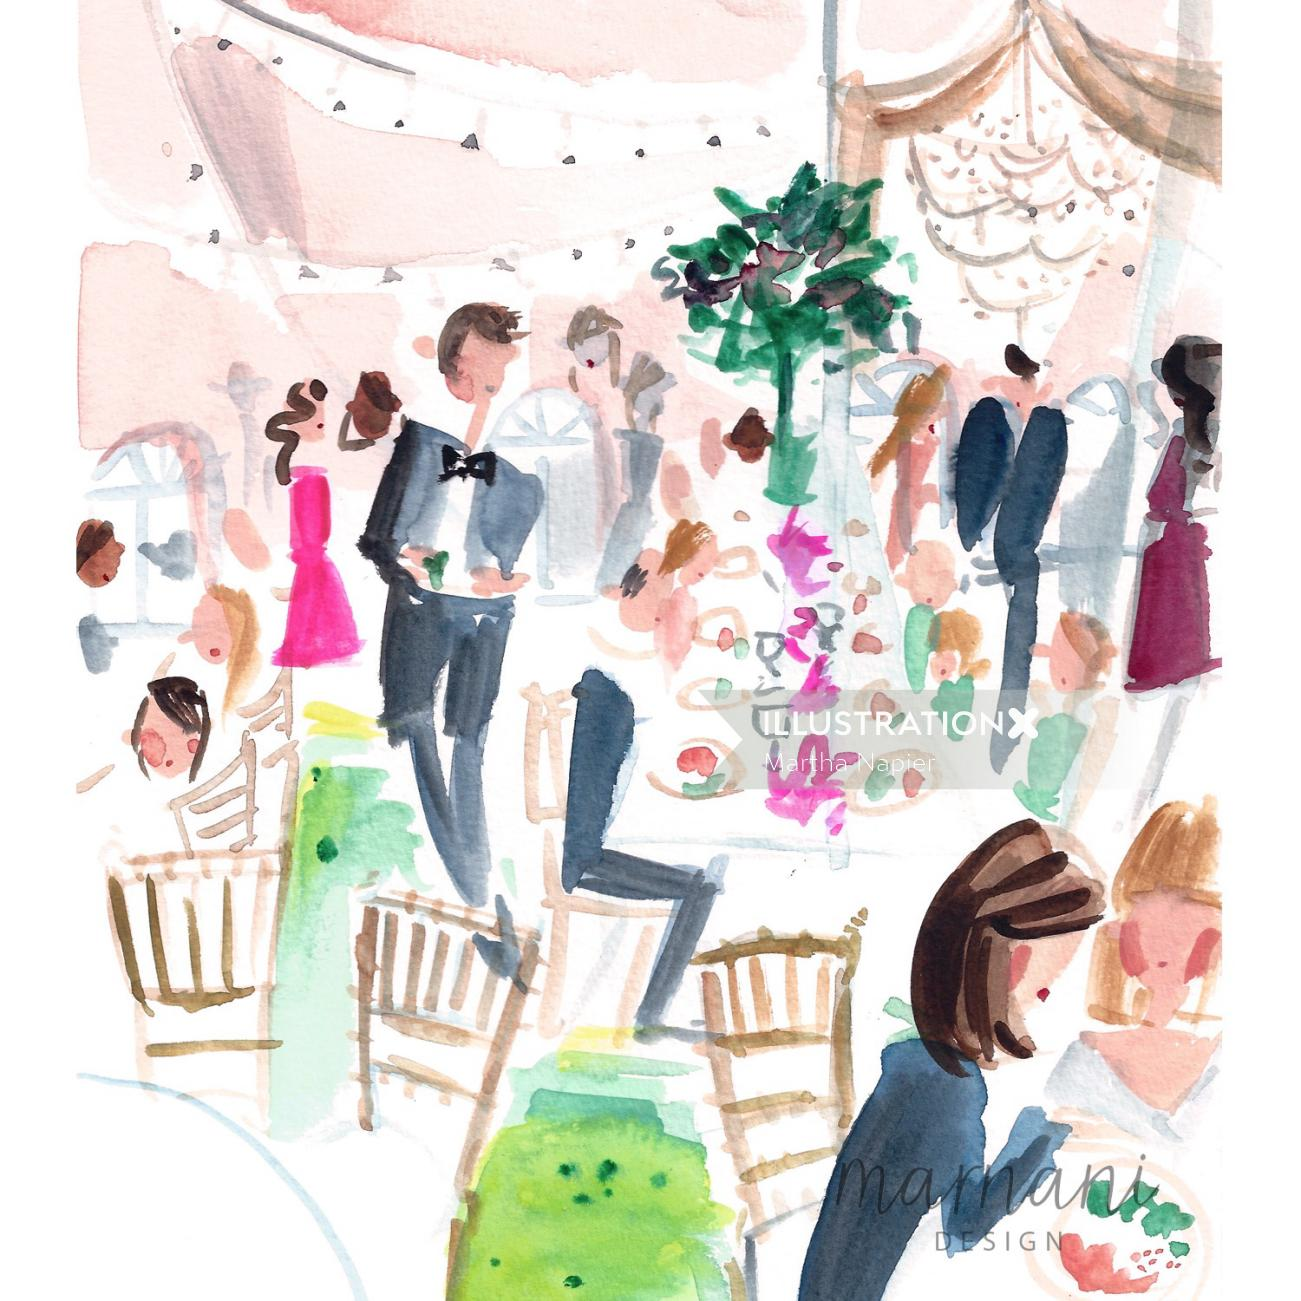 An illustration of scene at a cocktail party